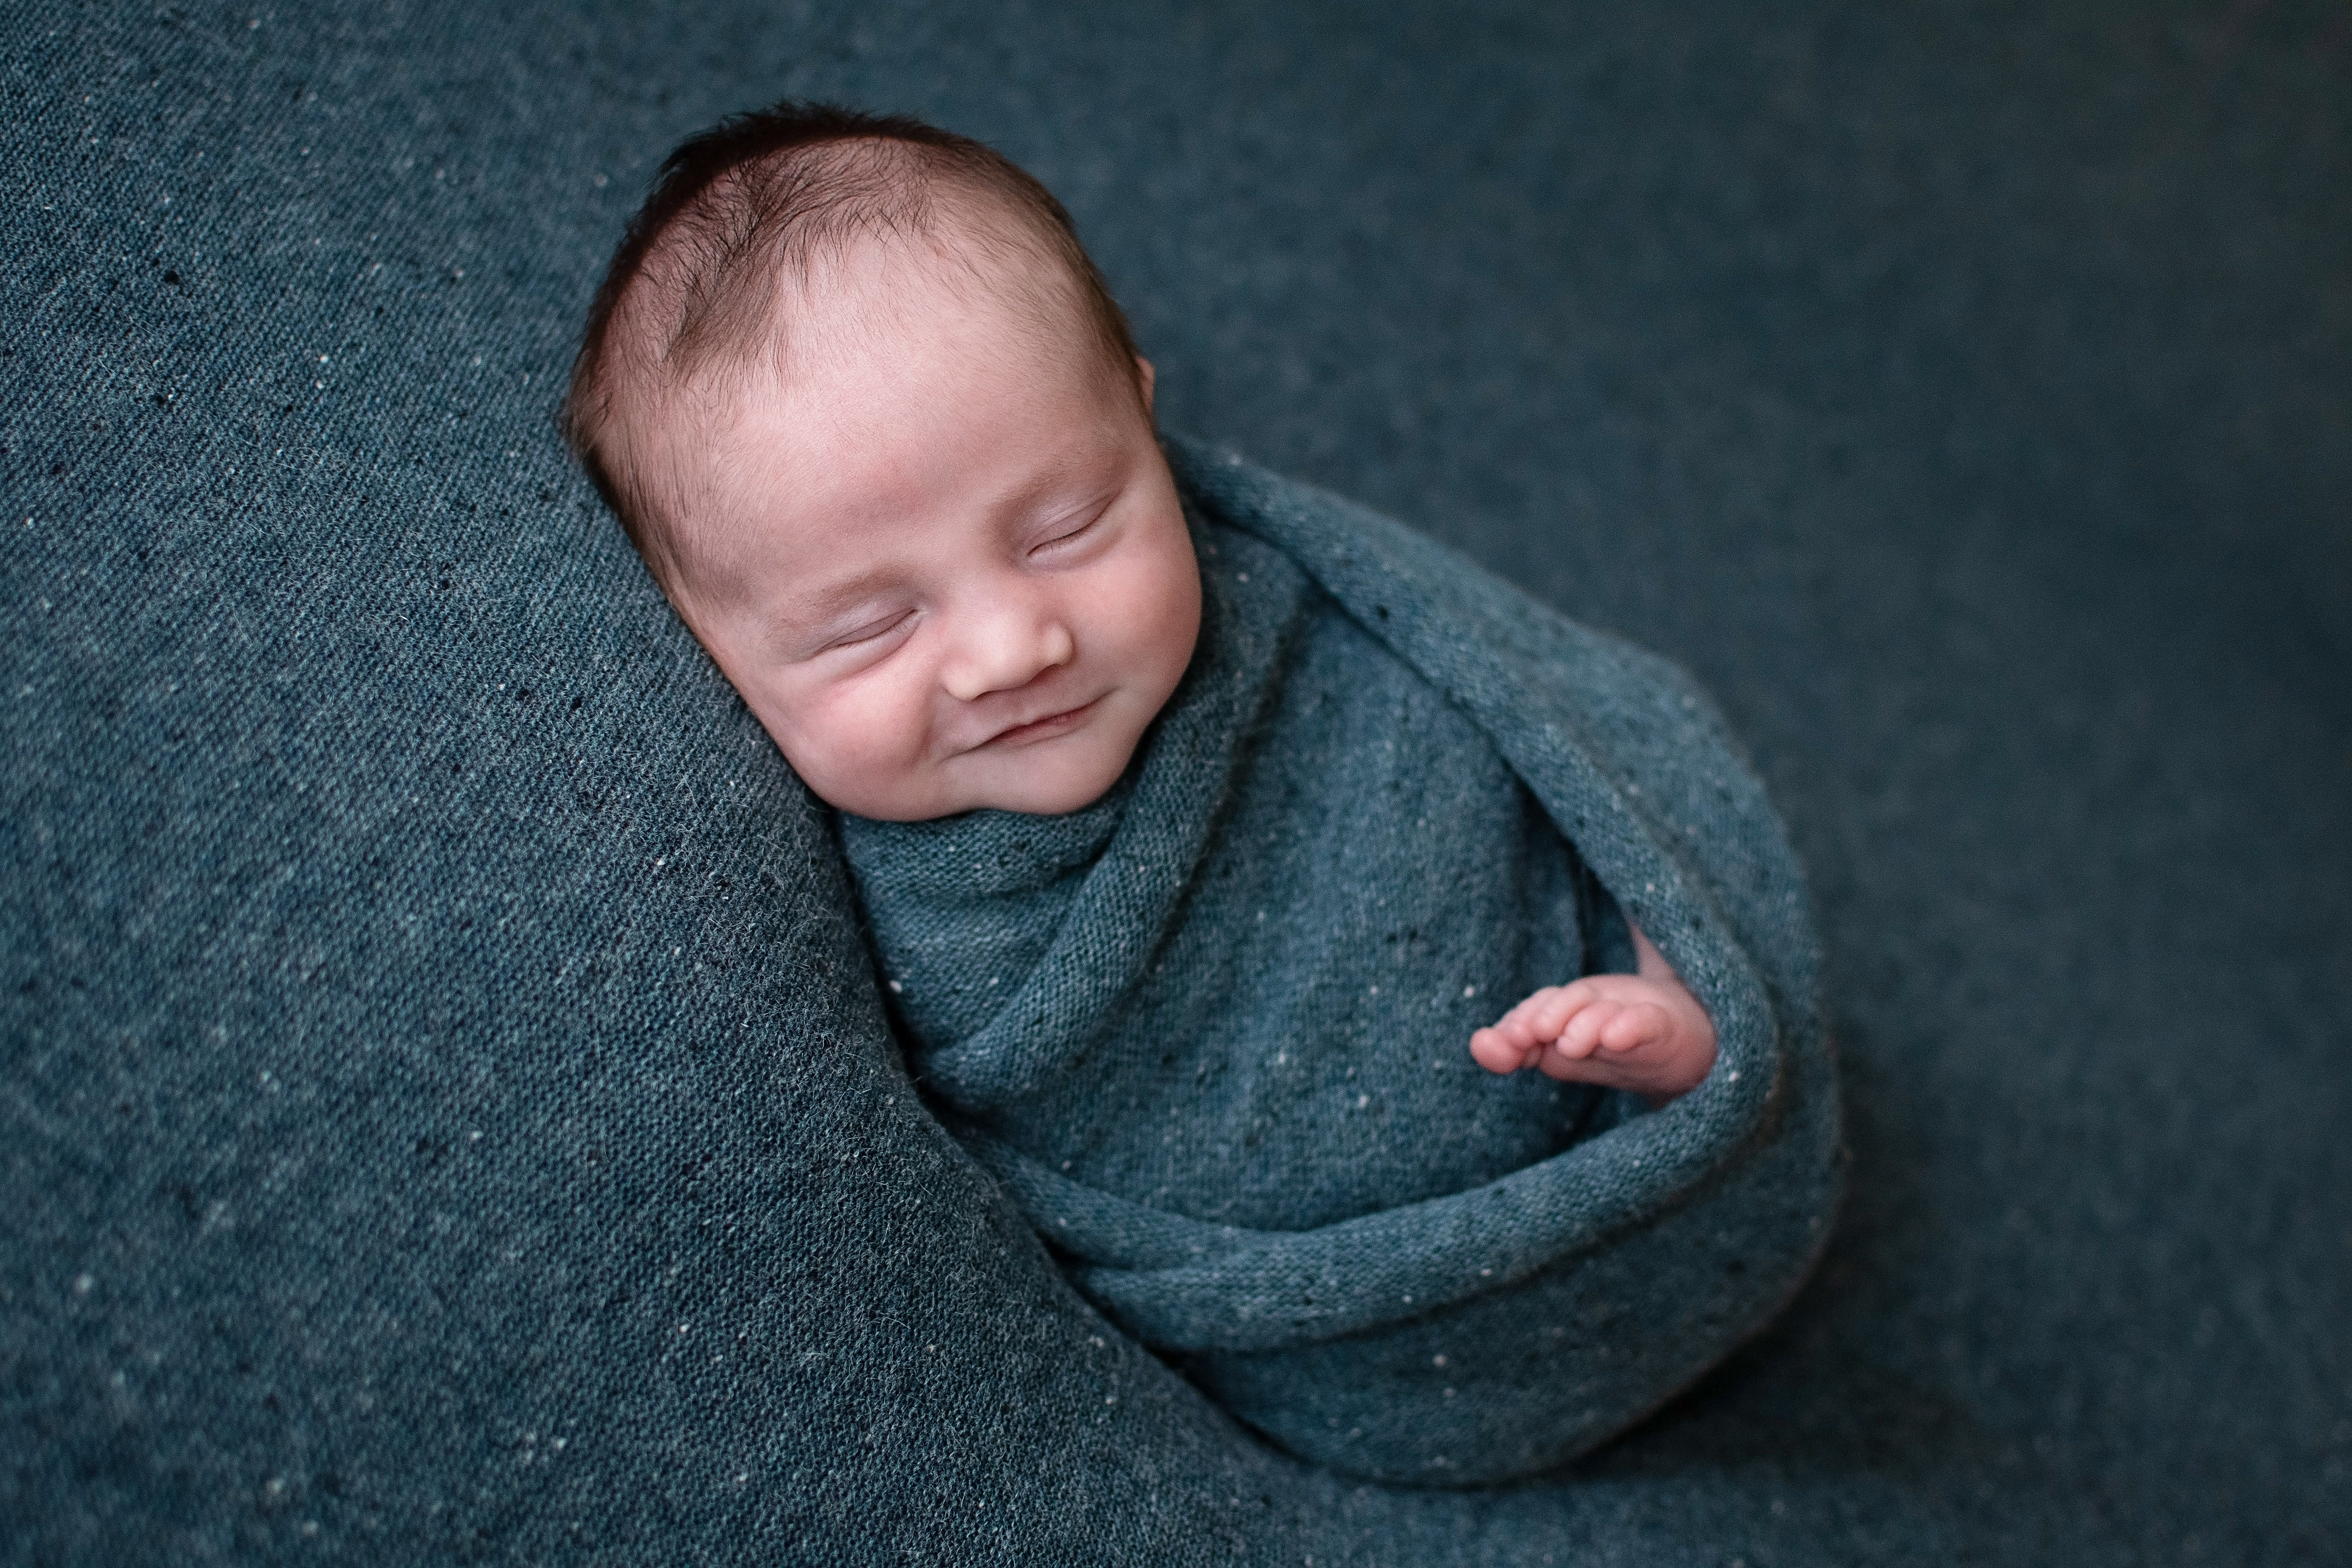 Newborn wrapped smiling